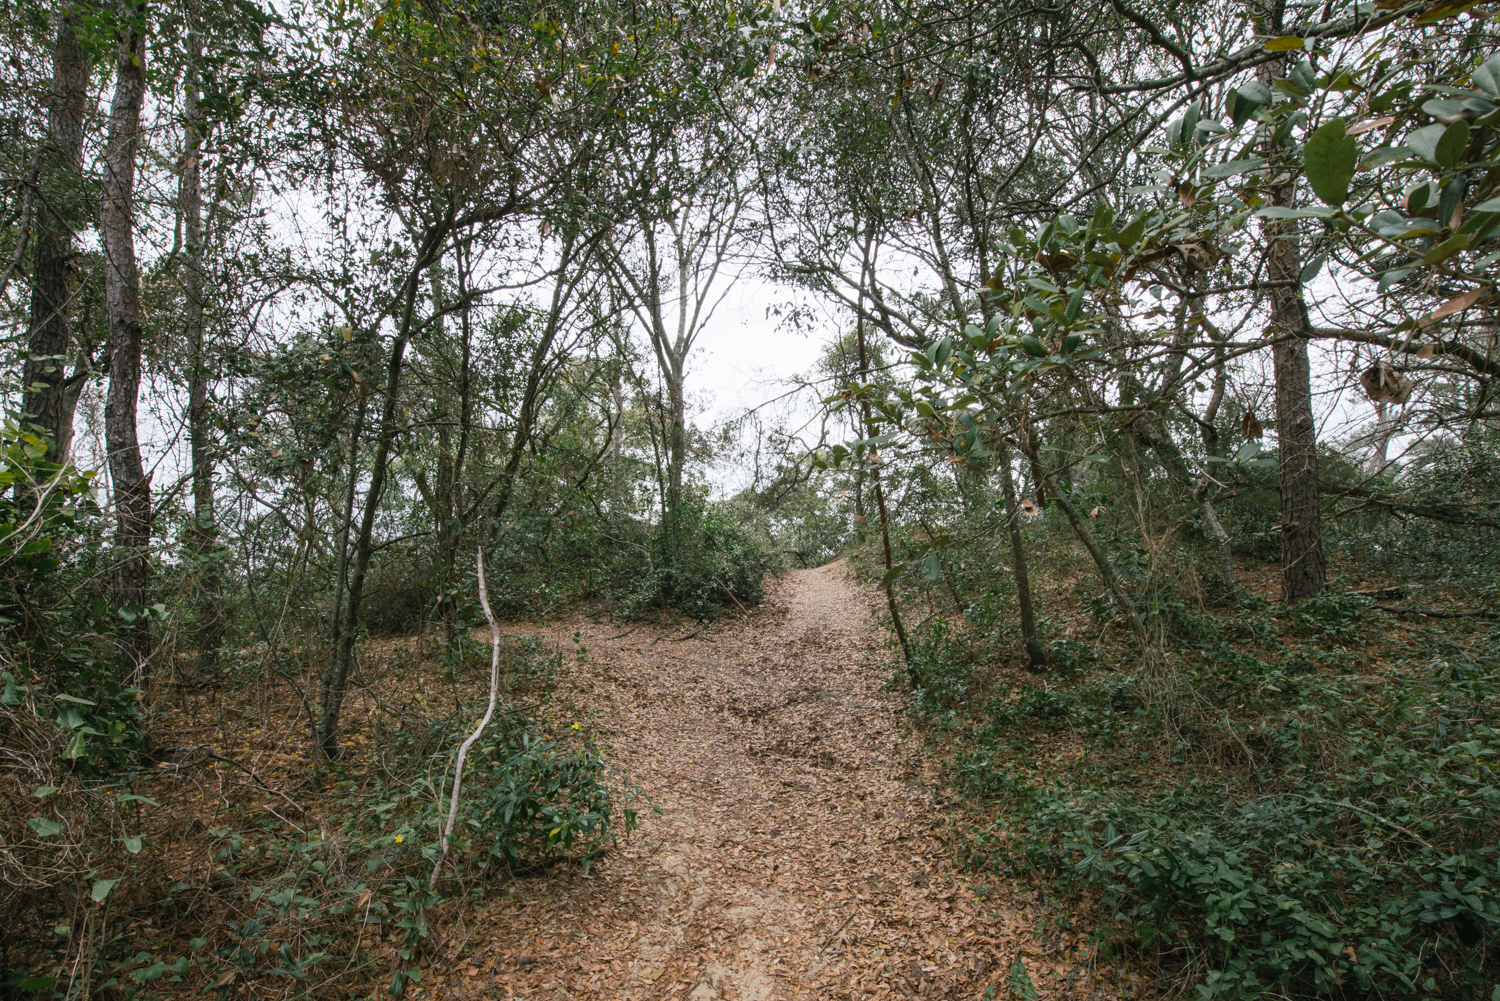 A footpath leads up to the highest dune.